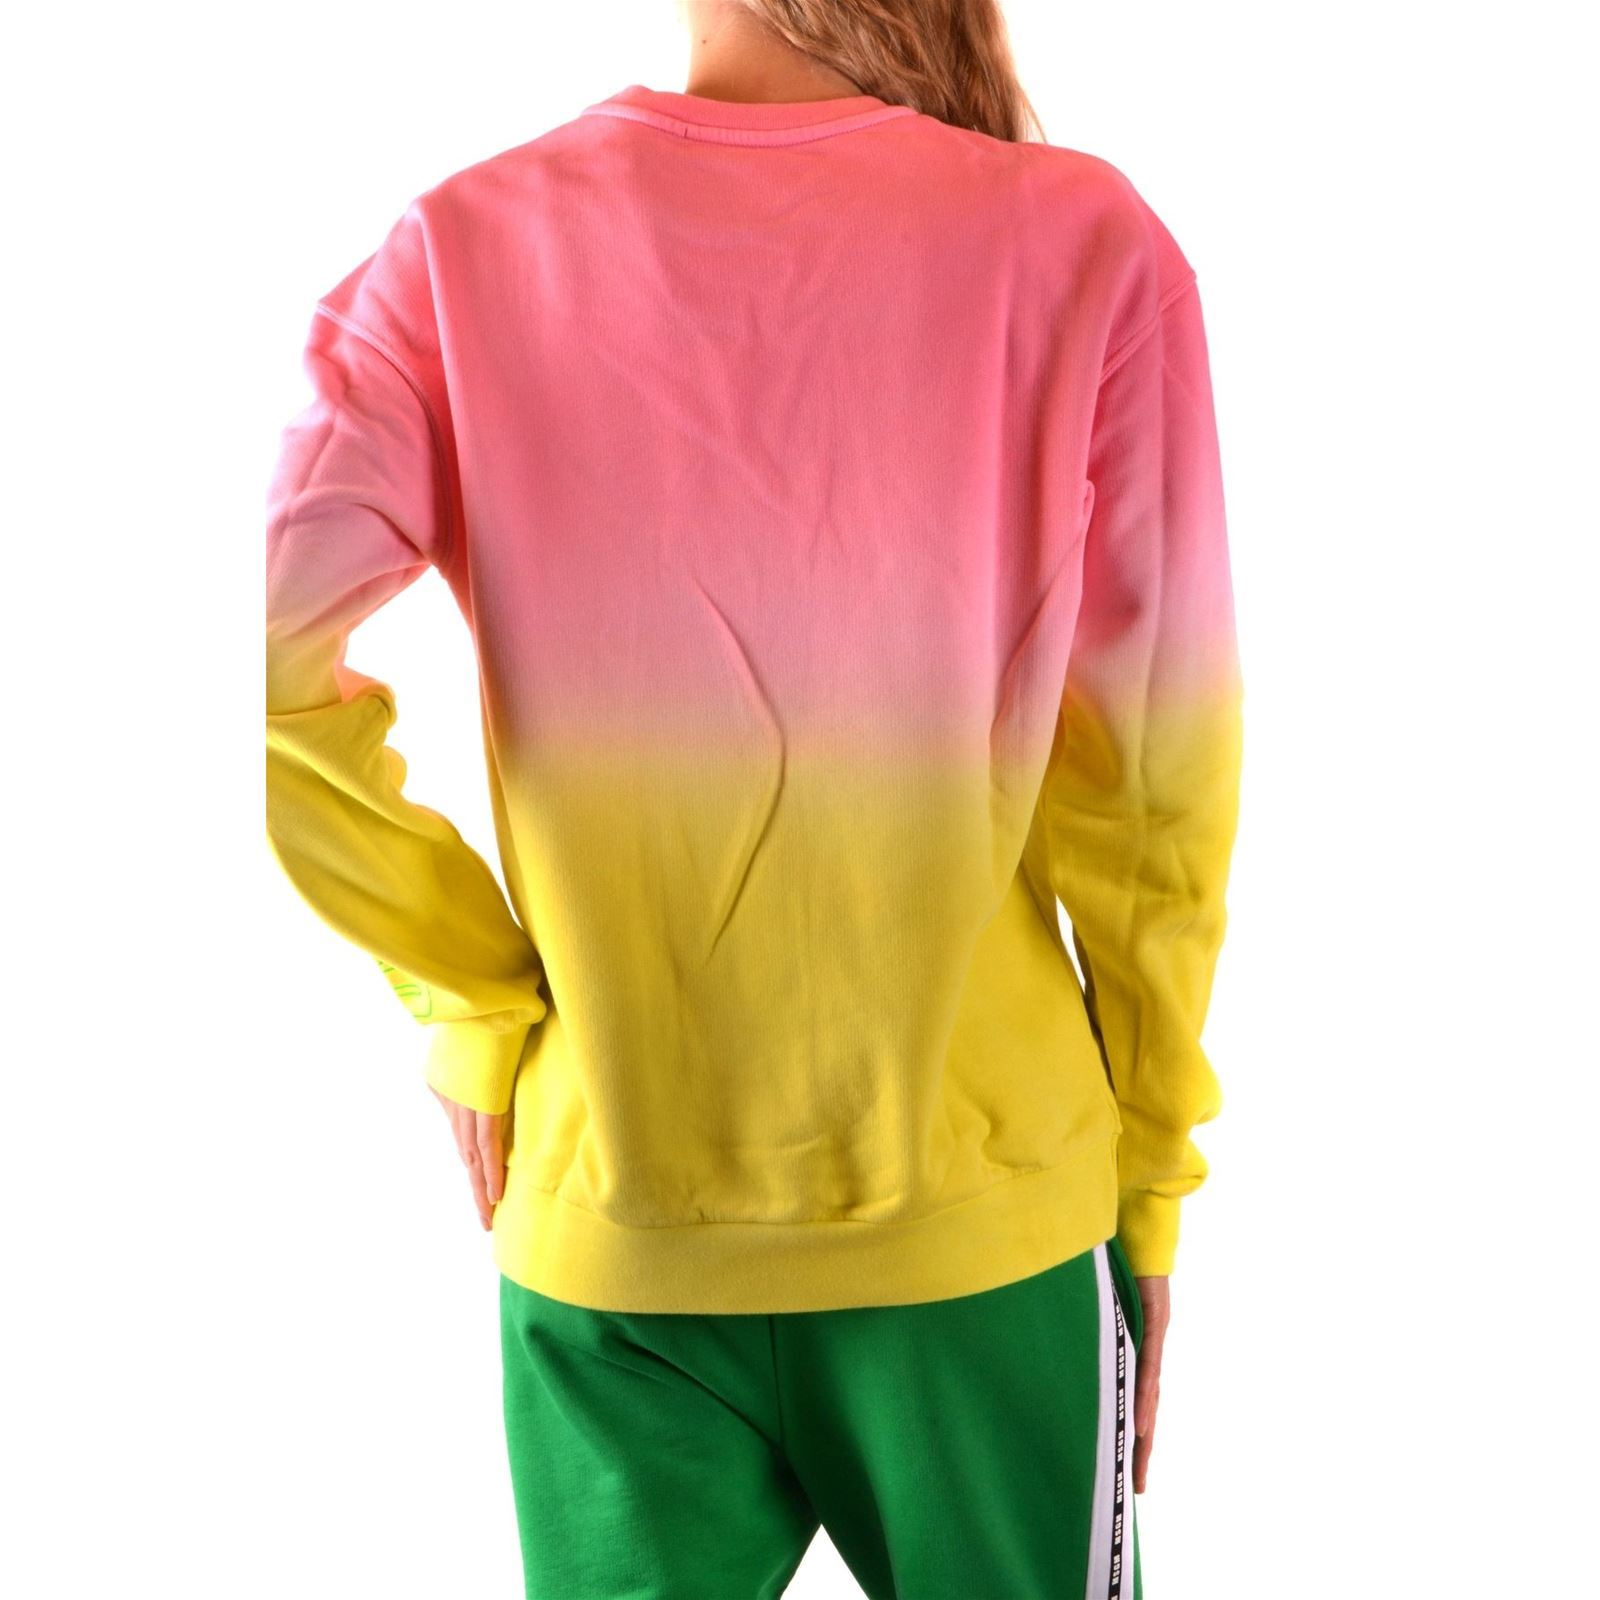 Femme Sweat shirtMulticolore shirtMulticolore Femme Sweat V Msgm Msgm uXiZOPkT